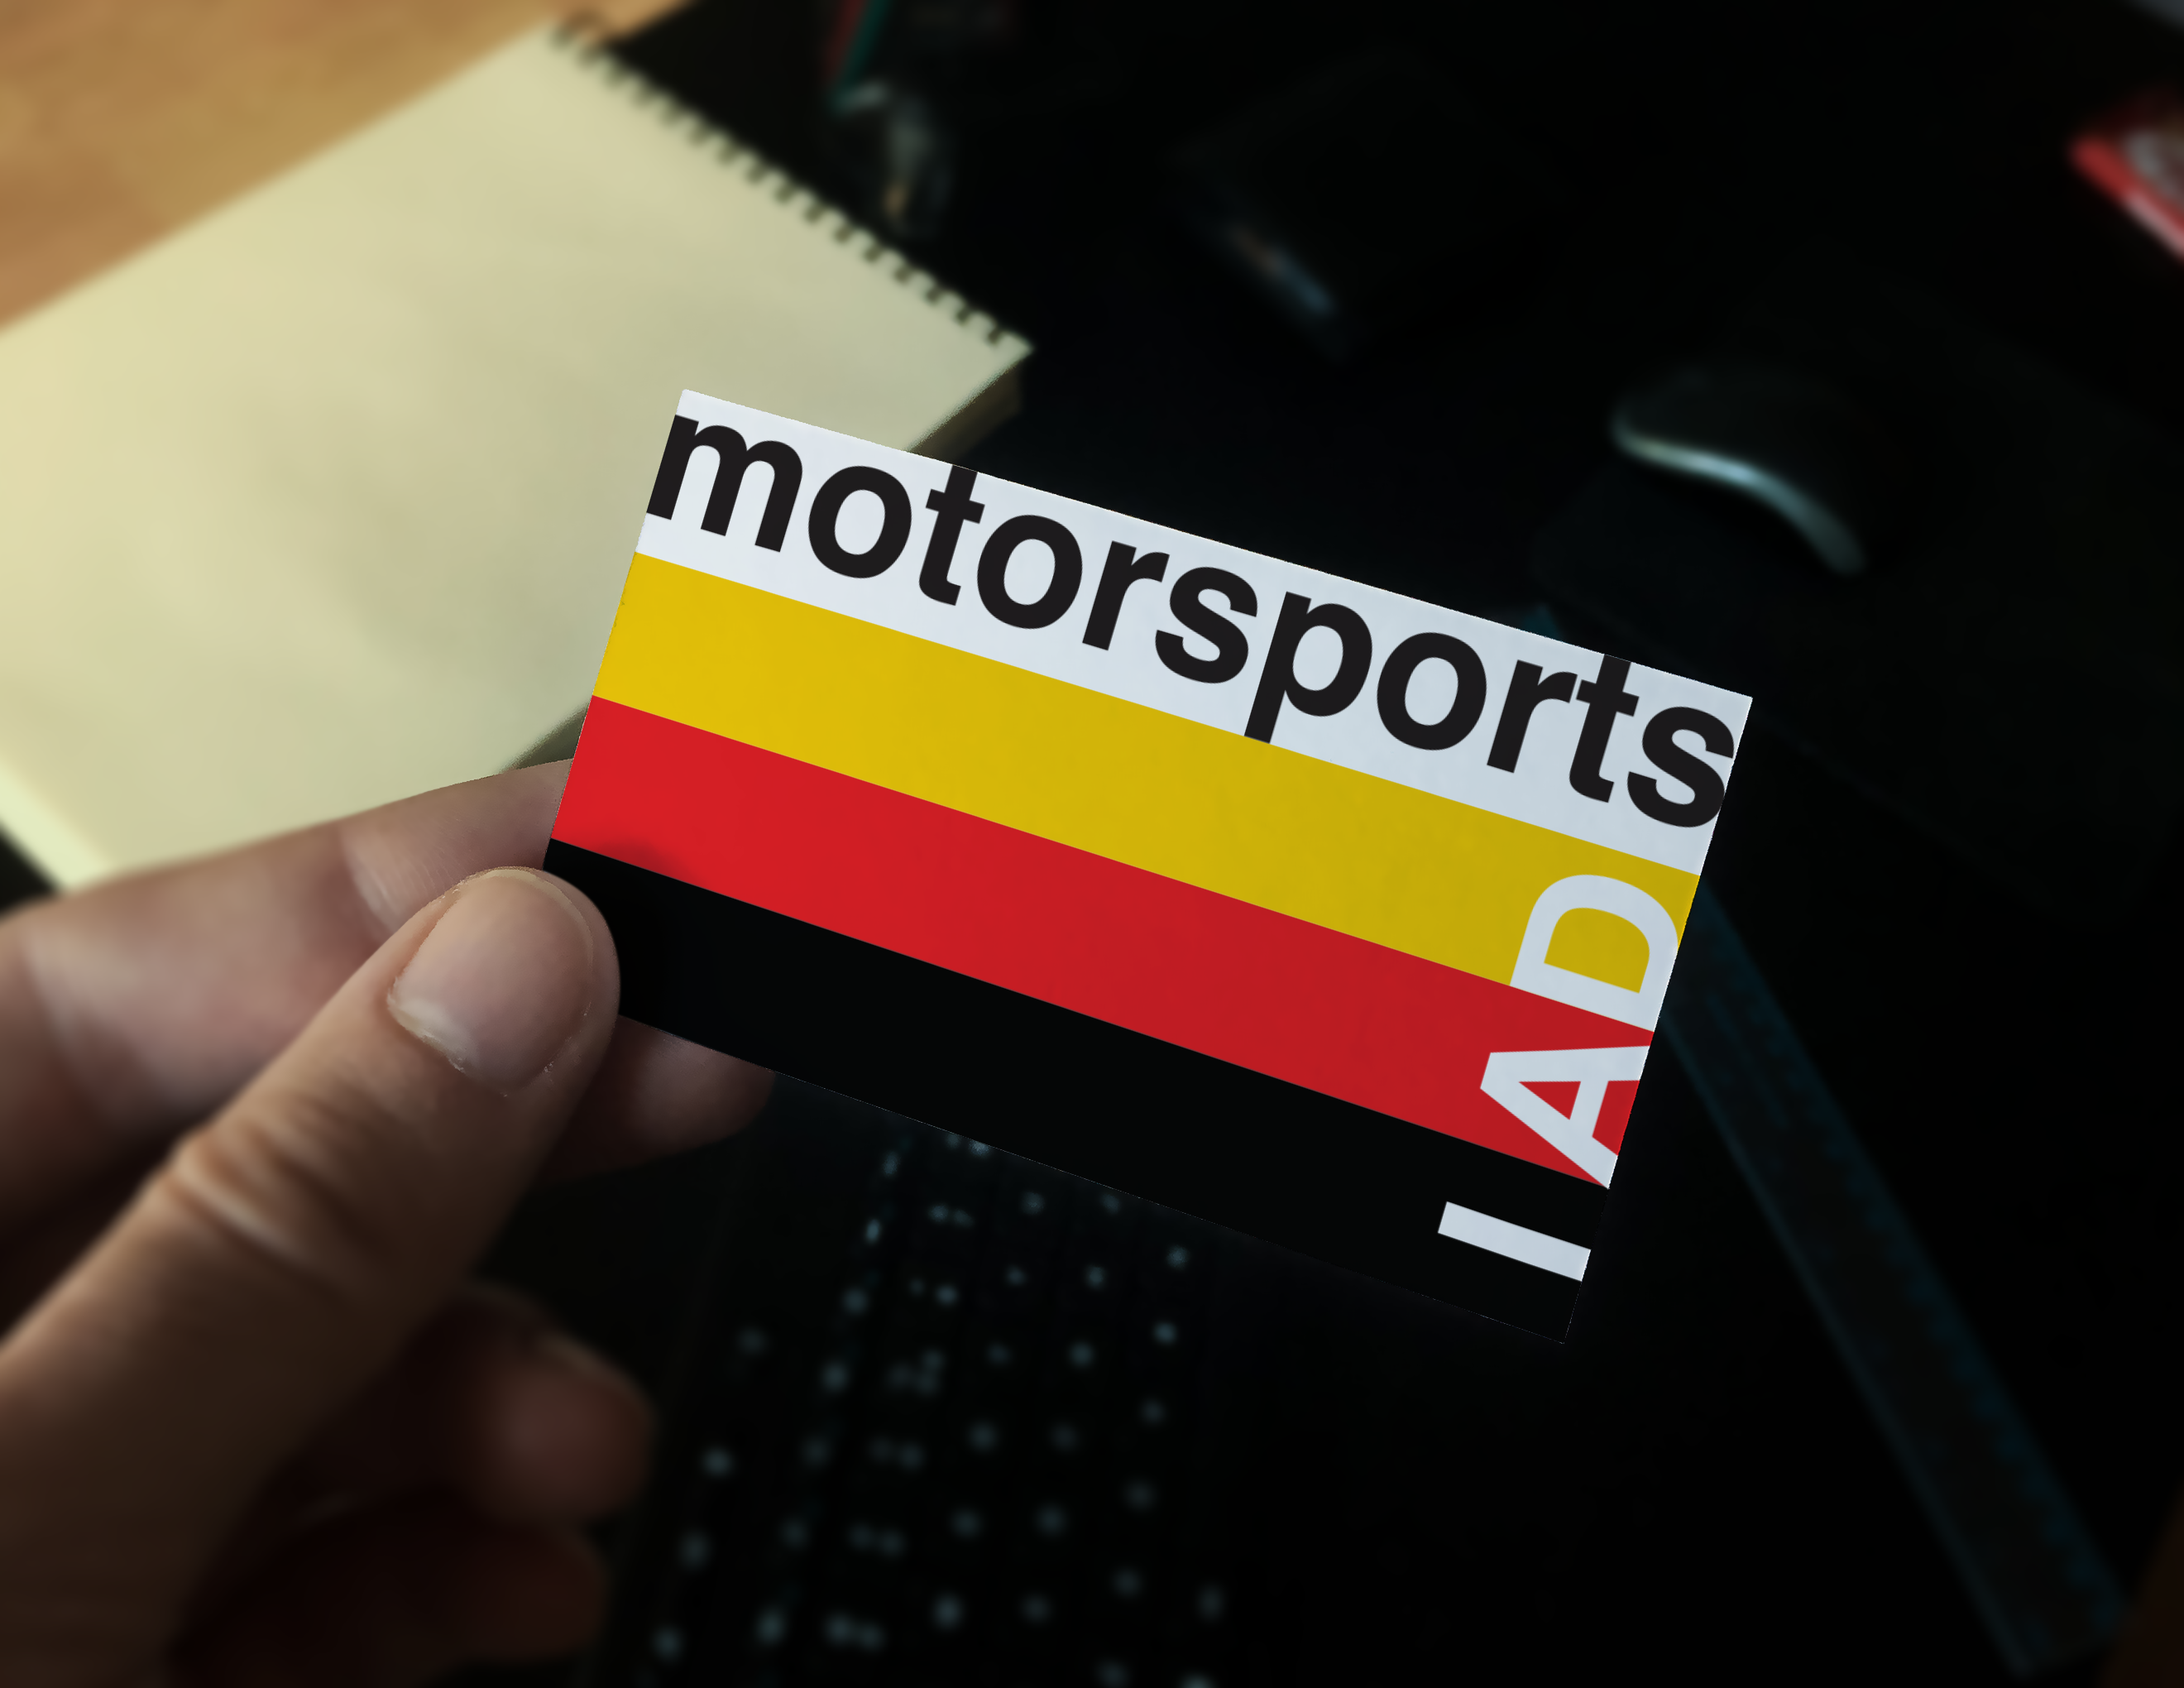 Iad motorsports business card manufacturers of custom porsche 933 iad motorsports business card manufacturers of custom porsche 933 race car rebuilds located in las vegas nv reheart Choice Image